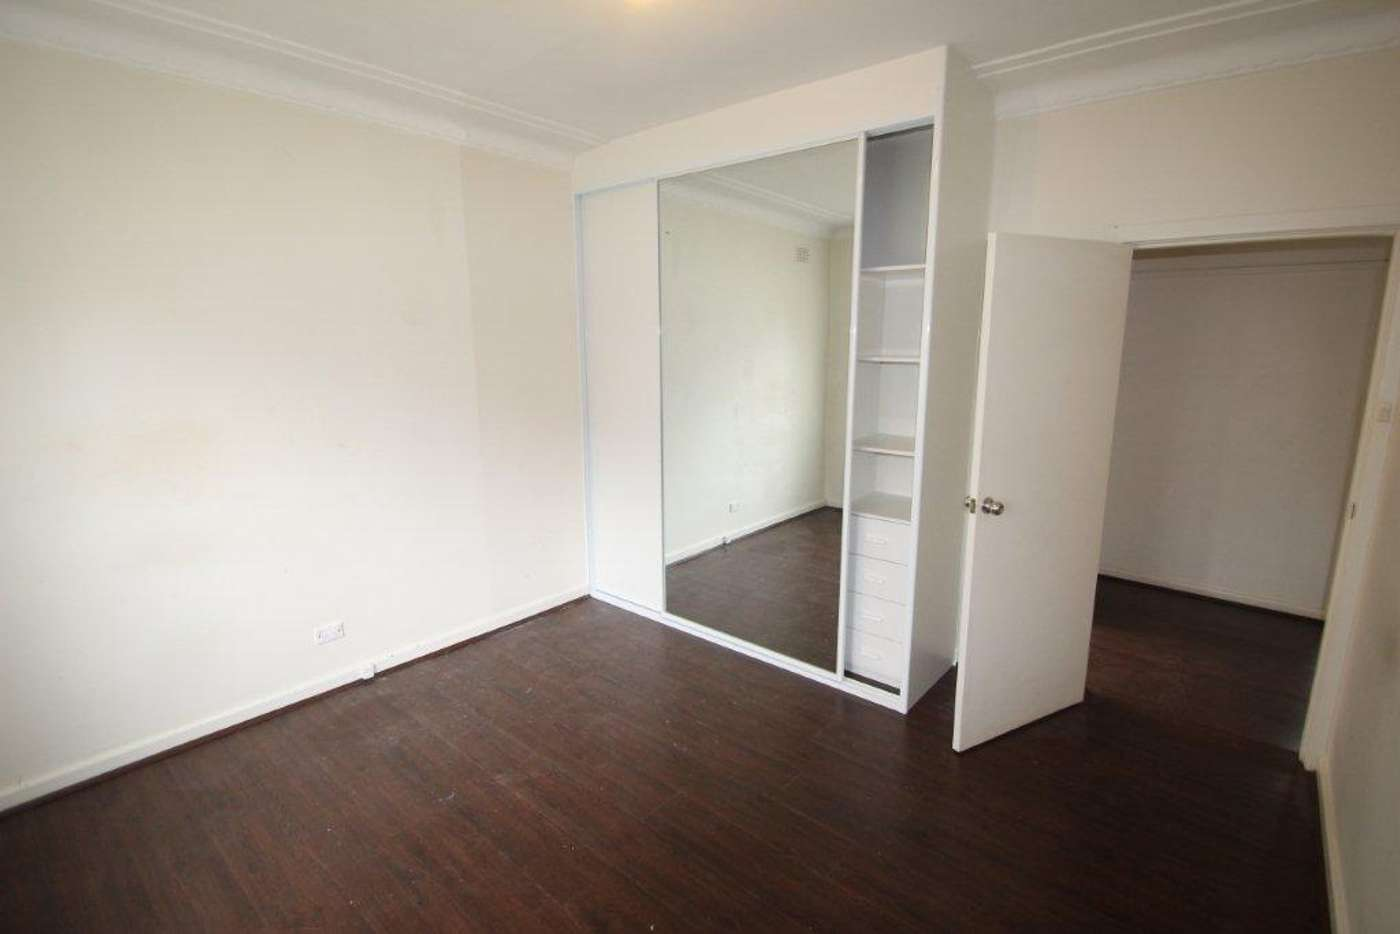 Sixth view of Homely house listing, 294 Woodville Road, Guildford NSW 2161